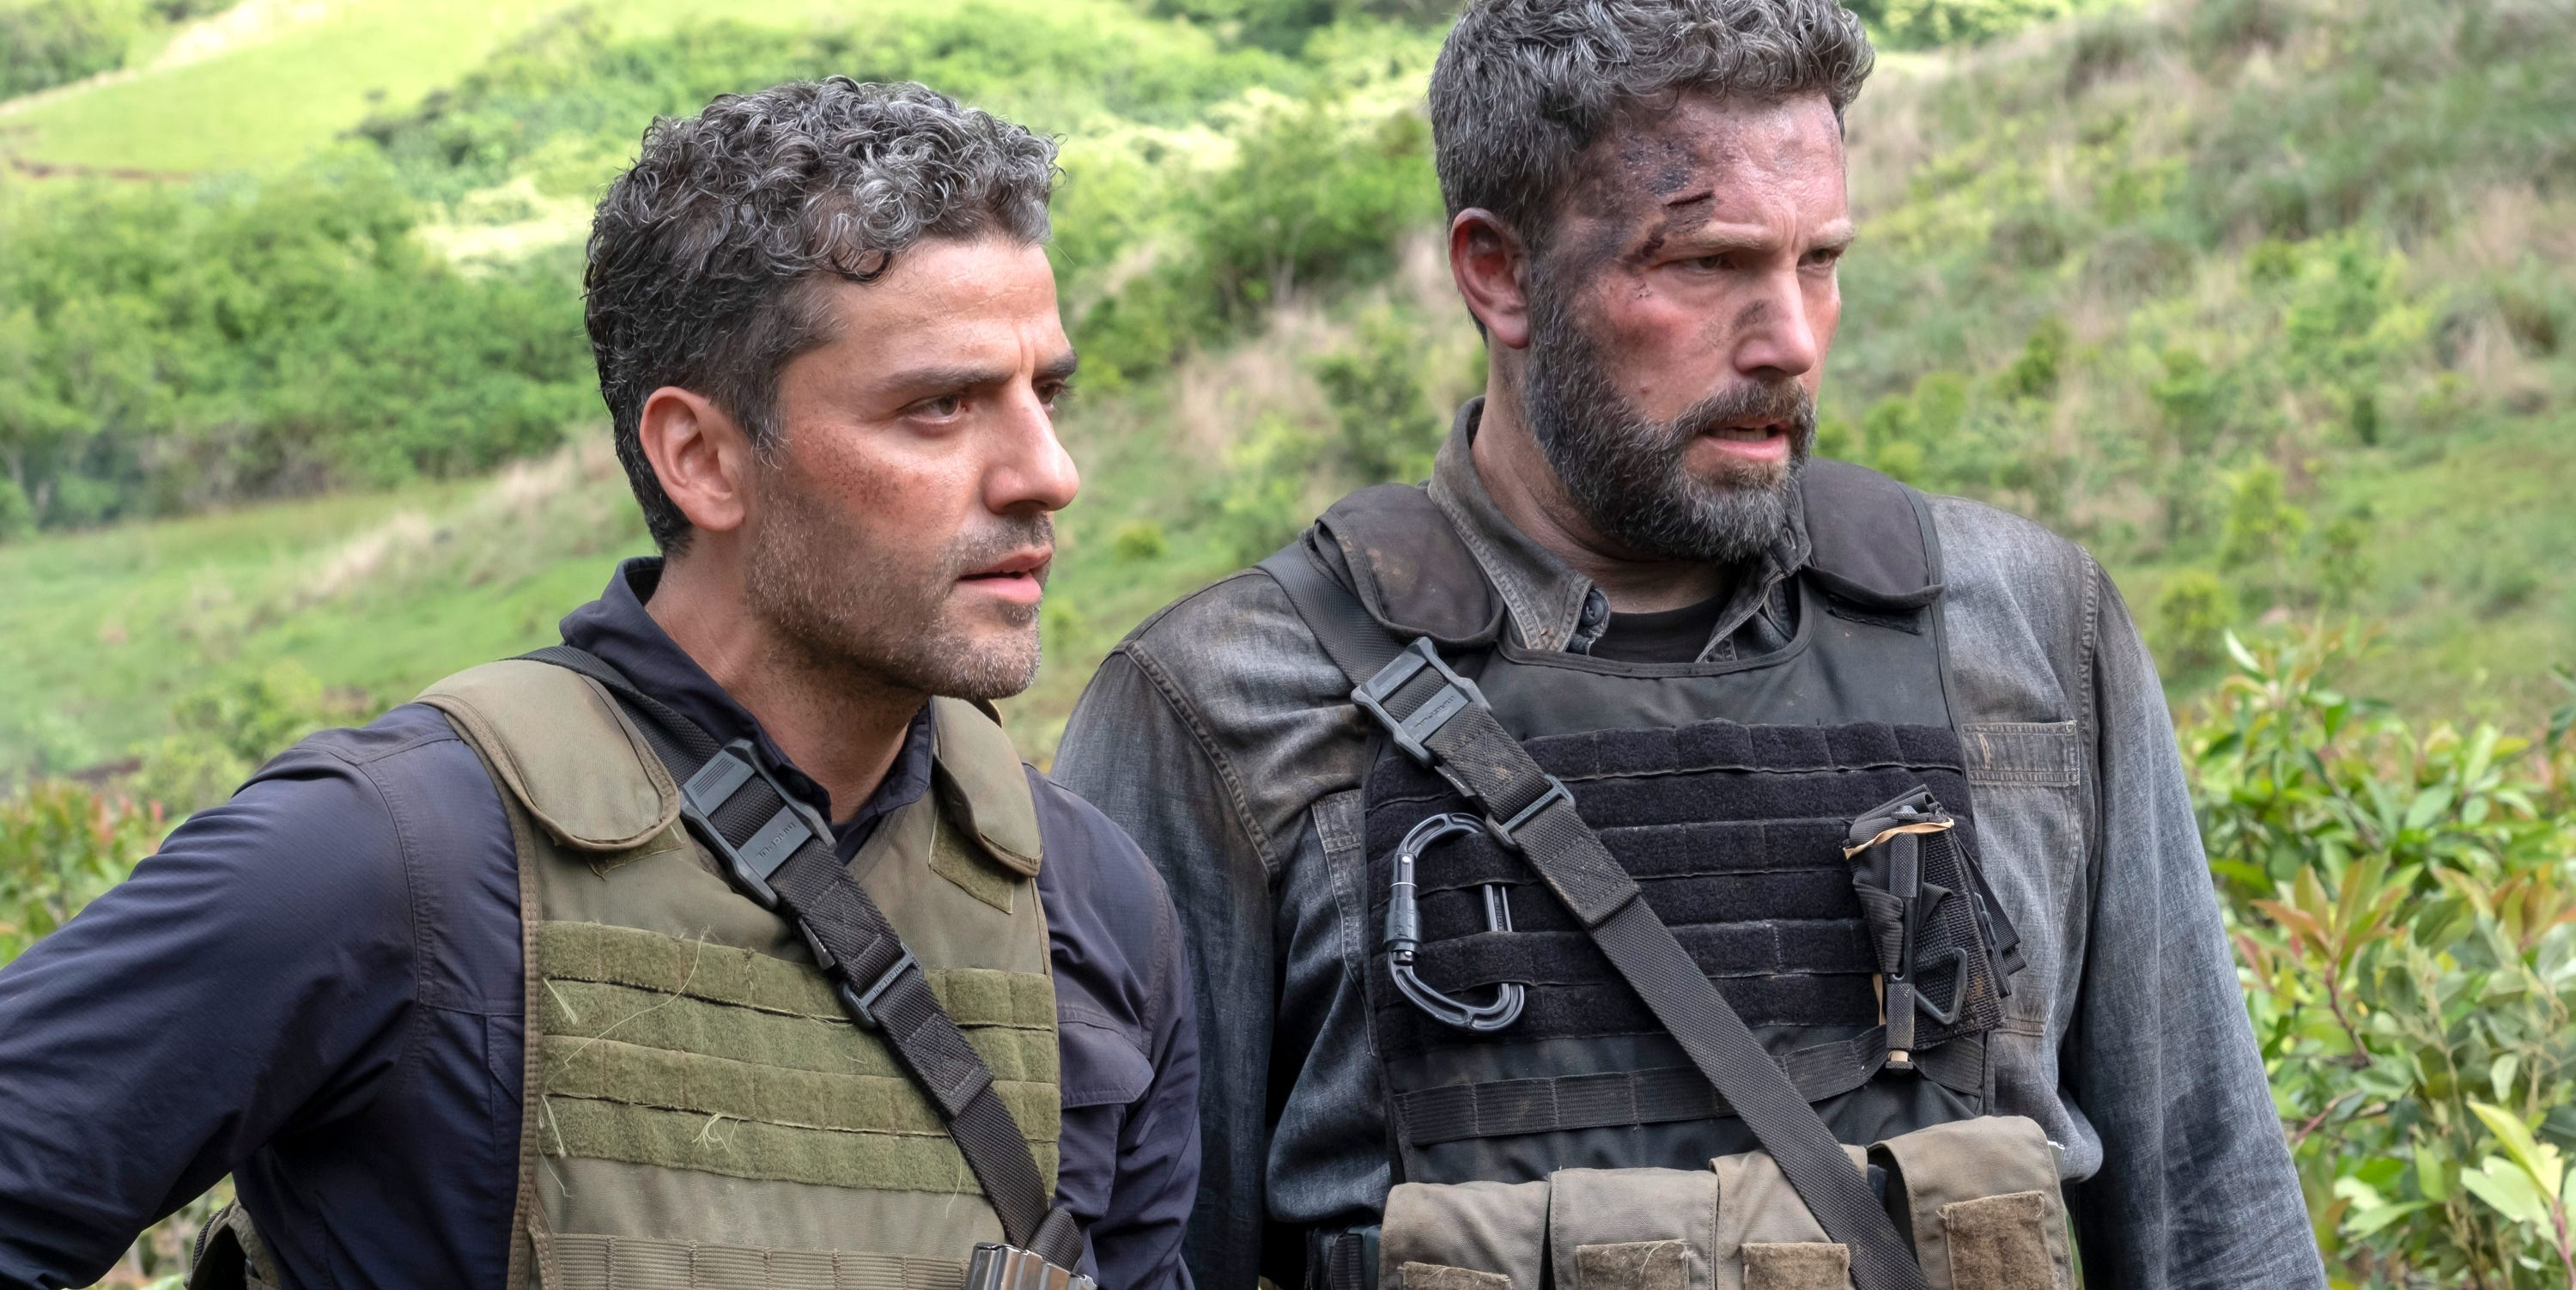 Oscar Isaac as Pope, Ben Affleck as Redfly, Triple Frontier